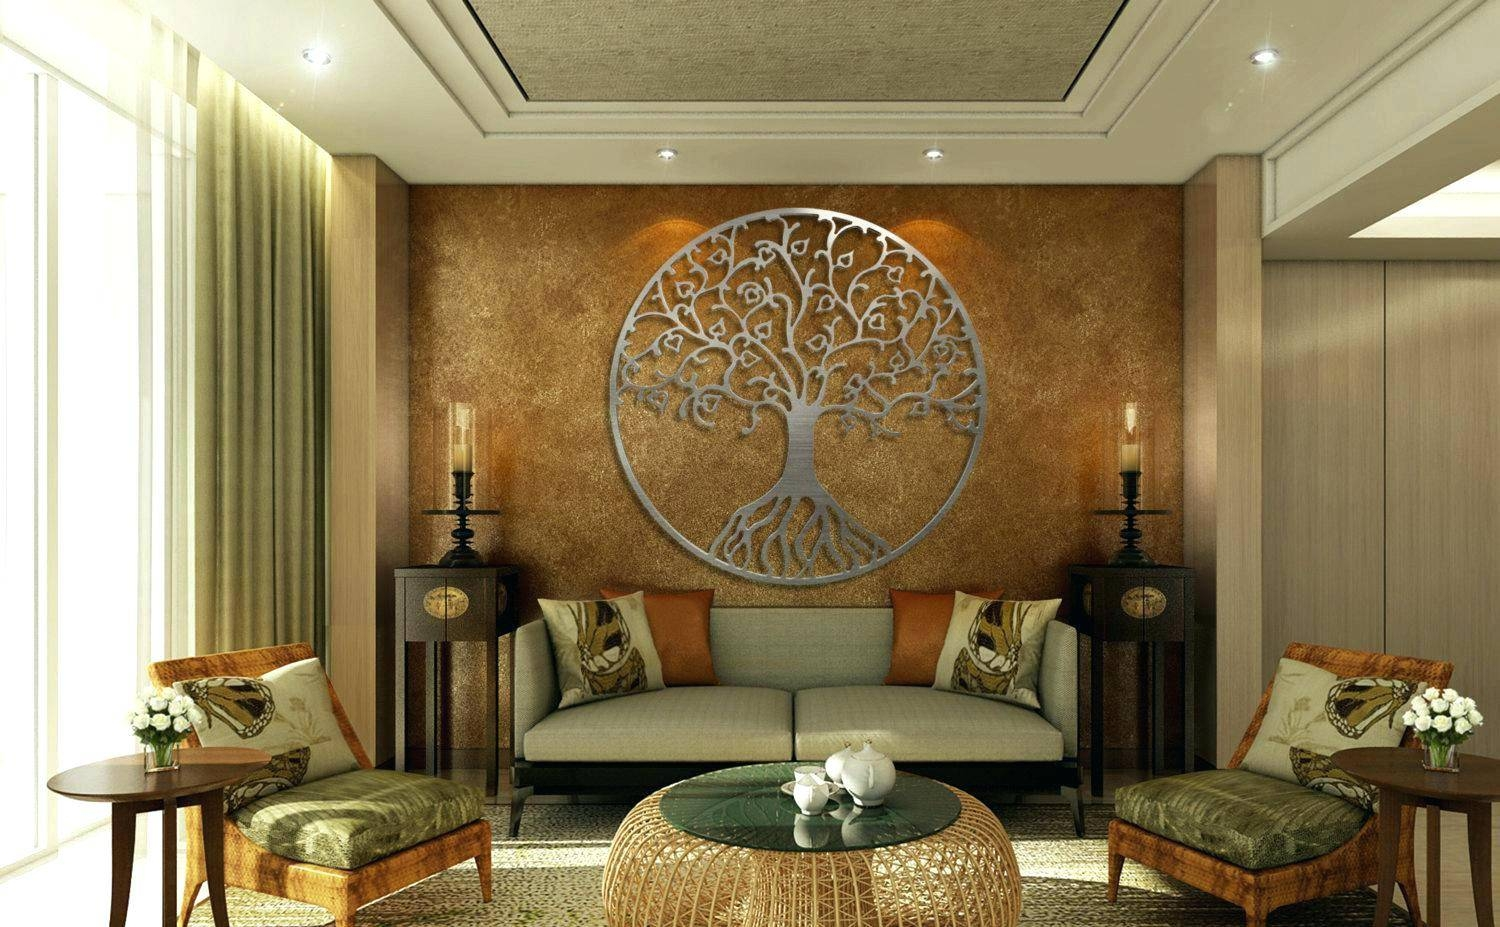 Wall Arts ~ Large Round Metal Wall Art Large Round Wood Wall Art For Most Current Large Round Metal Wall Art (View 10 of 20)